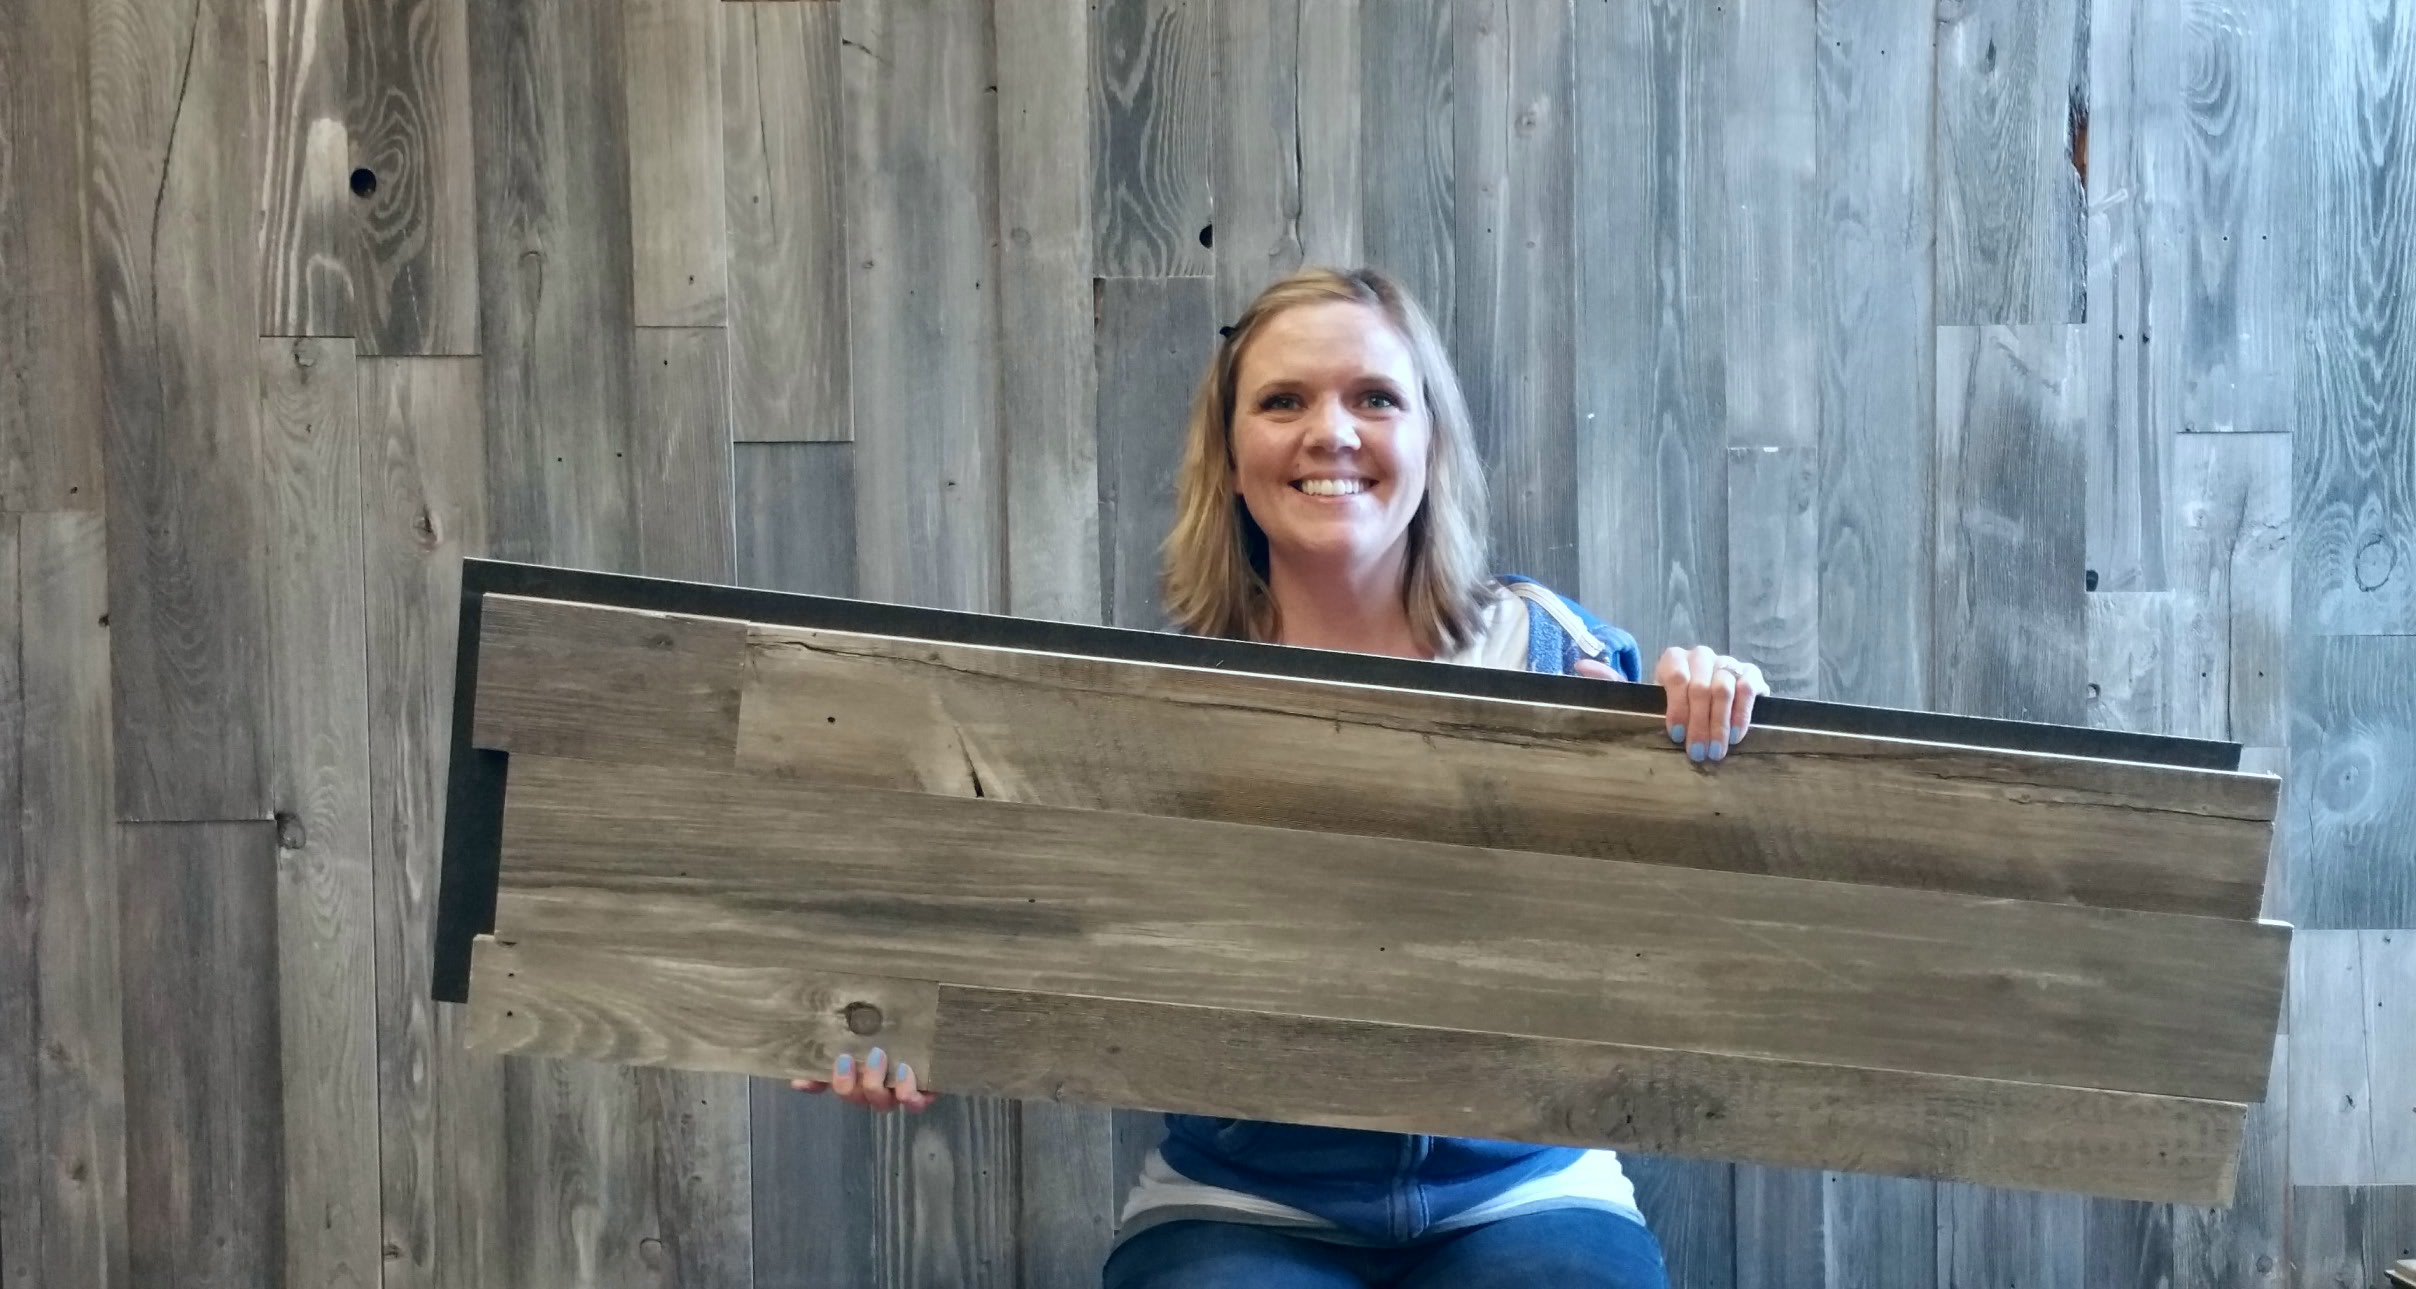 Find Many Great New Used Options And Get The Best Deals For Reclaimed Barnwood Subway Tile Barn Wood Vintage Rustic Paneling At Online